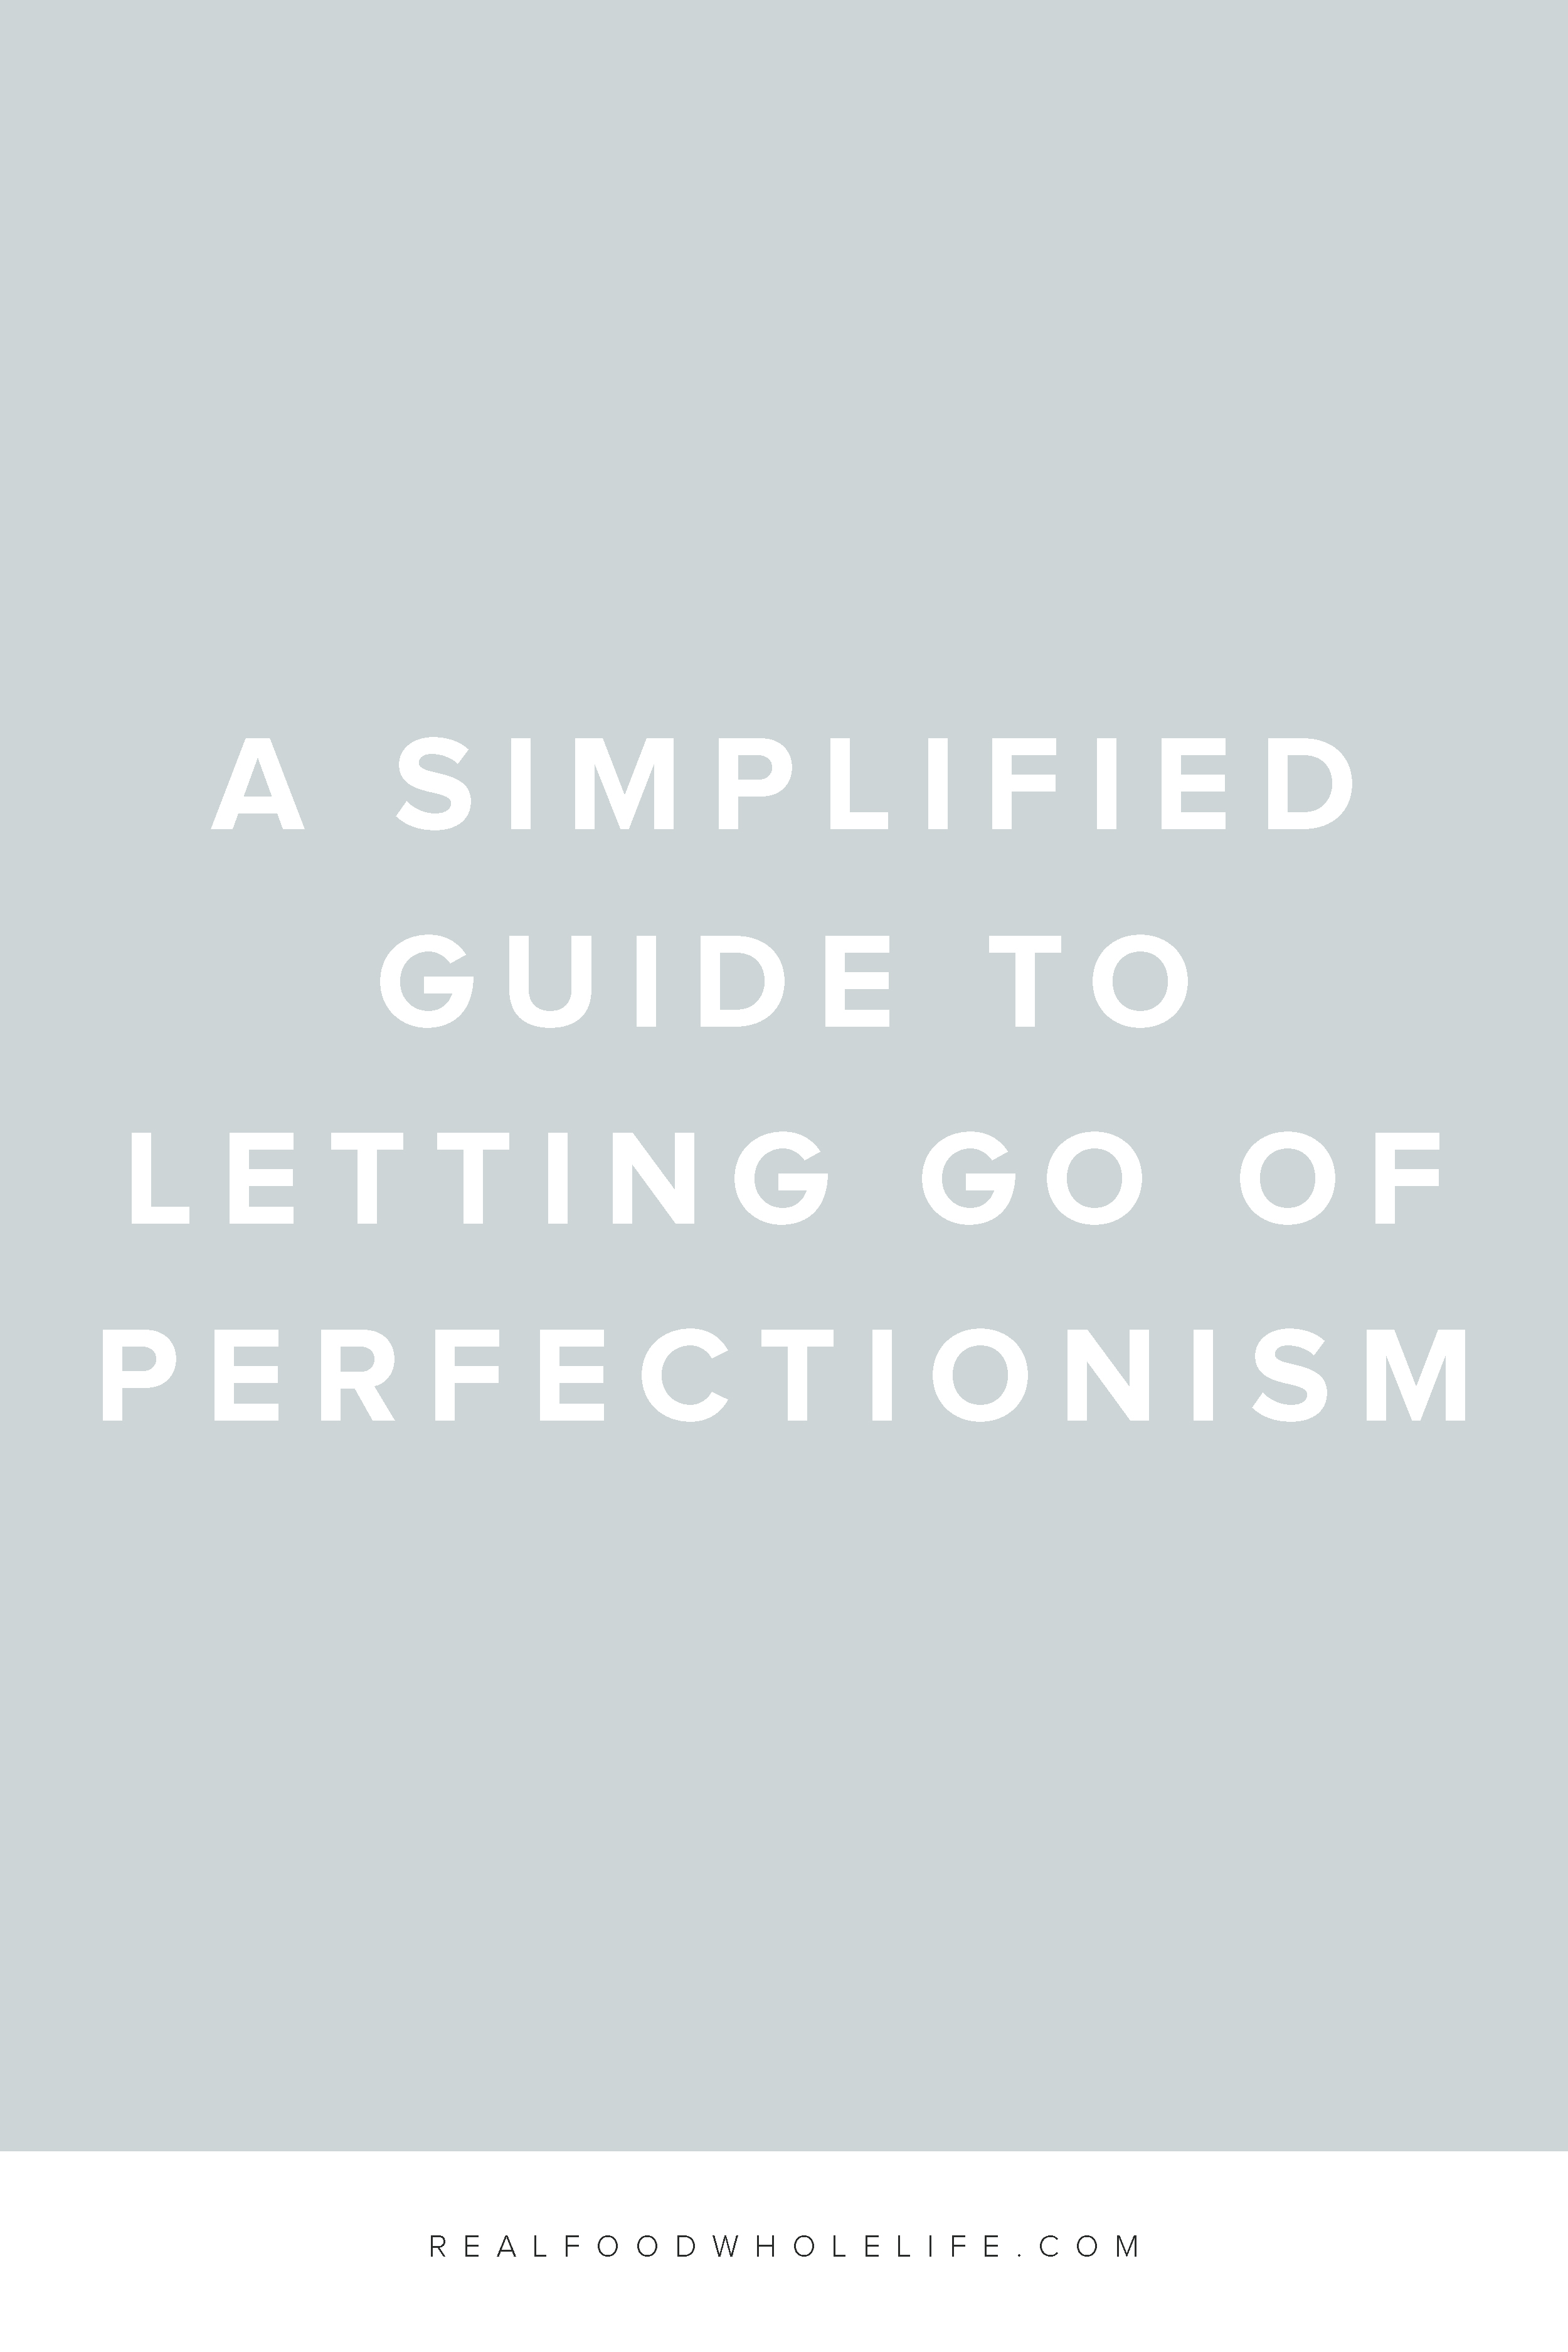 A simplified guide to letting go of perfectionism. Read on for more on how perfectionism is different from striving for greatness. #realfoodwholelife #feelgoodeffect #gentleisthenewperfect #practicegentle #wellness #healthy